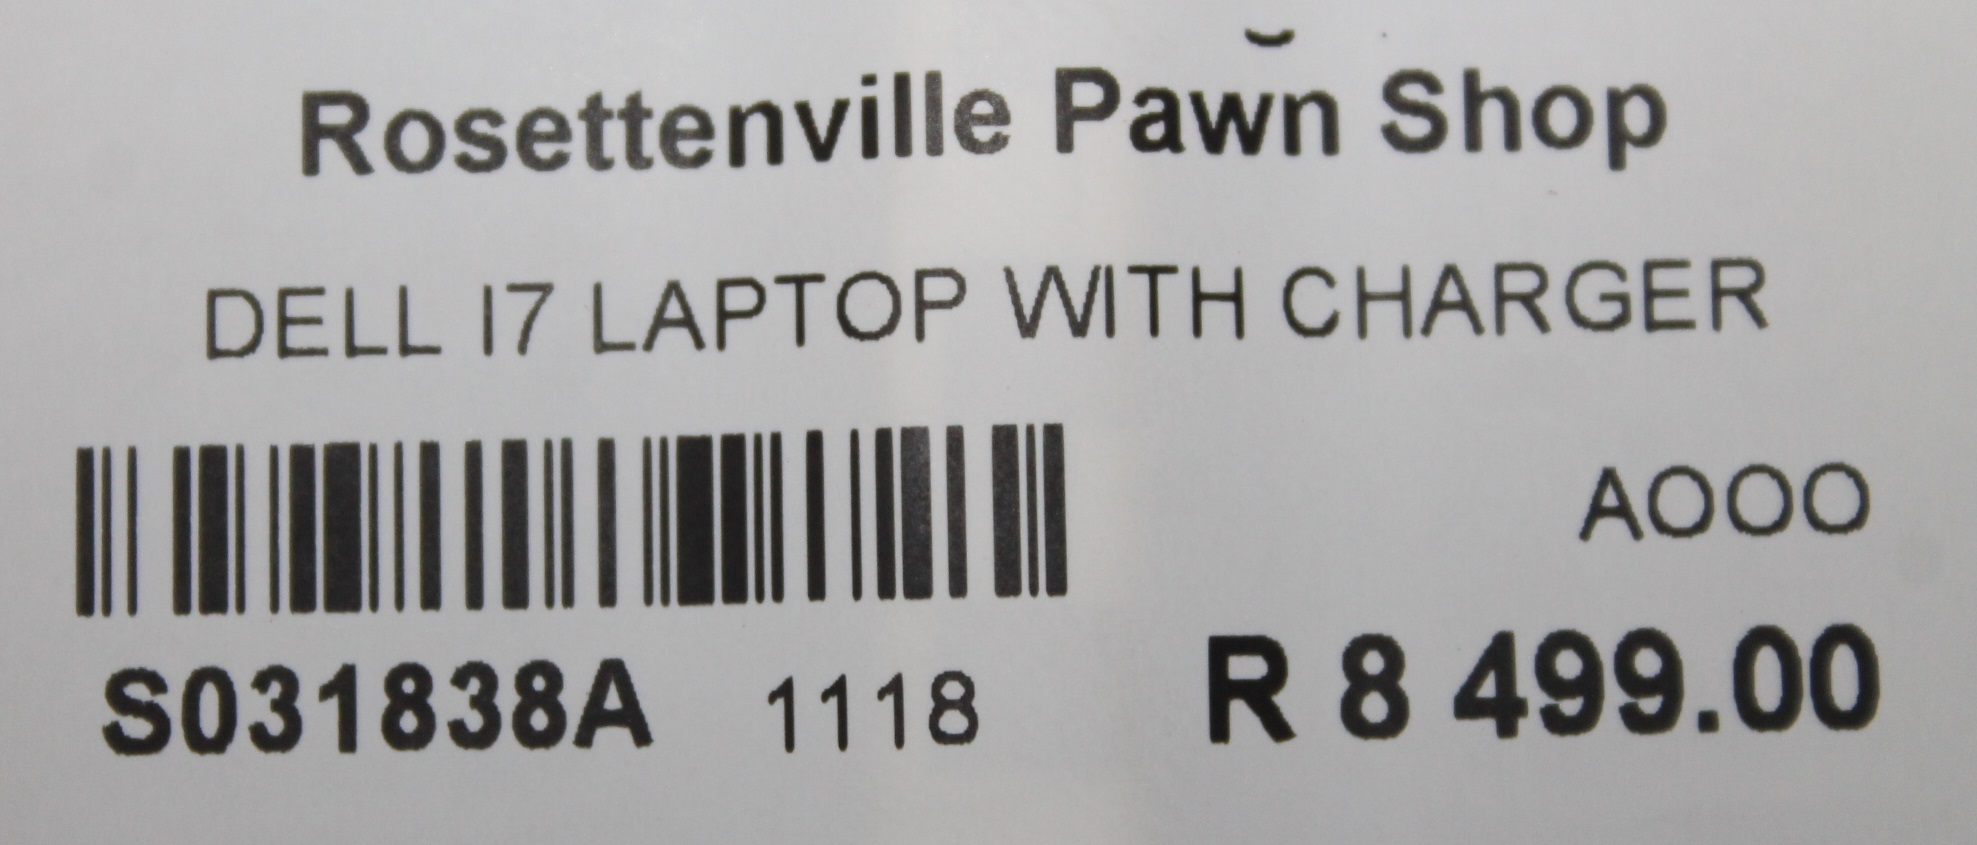 Dell I7 laptop with charger S031838A #Rosettenvillepawnshop